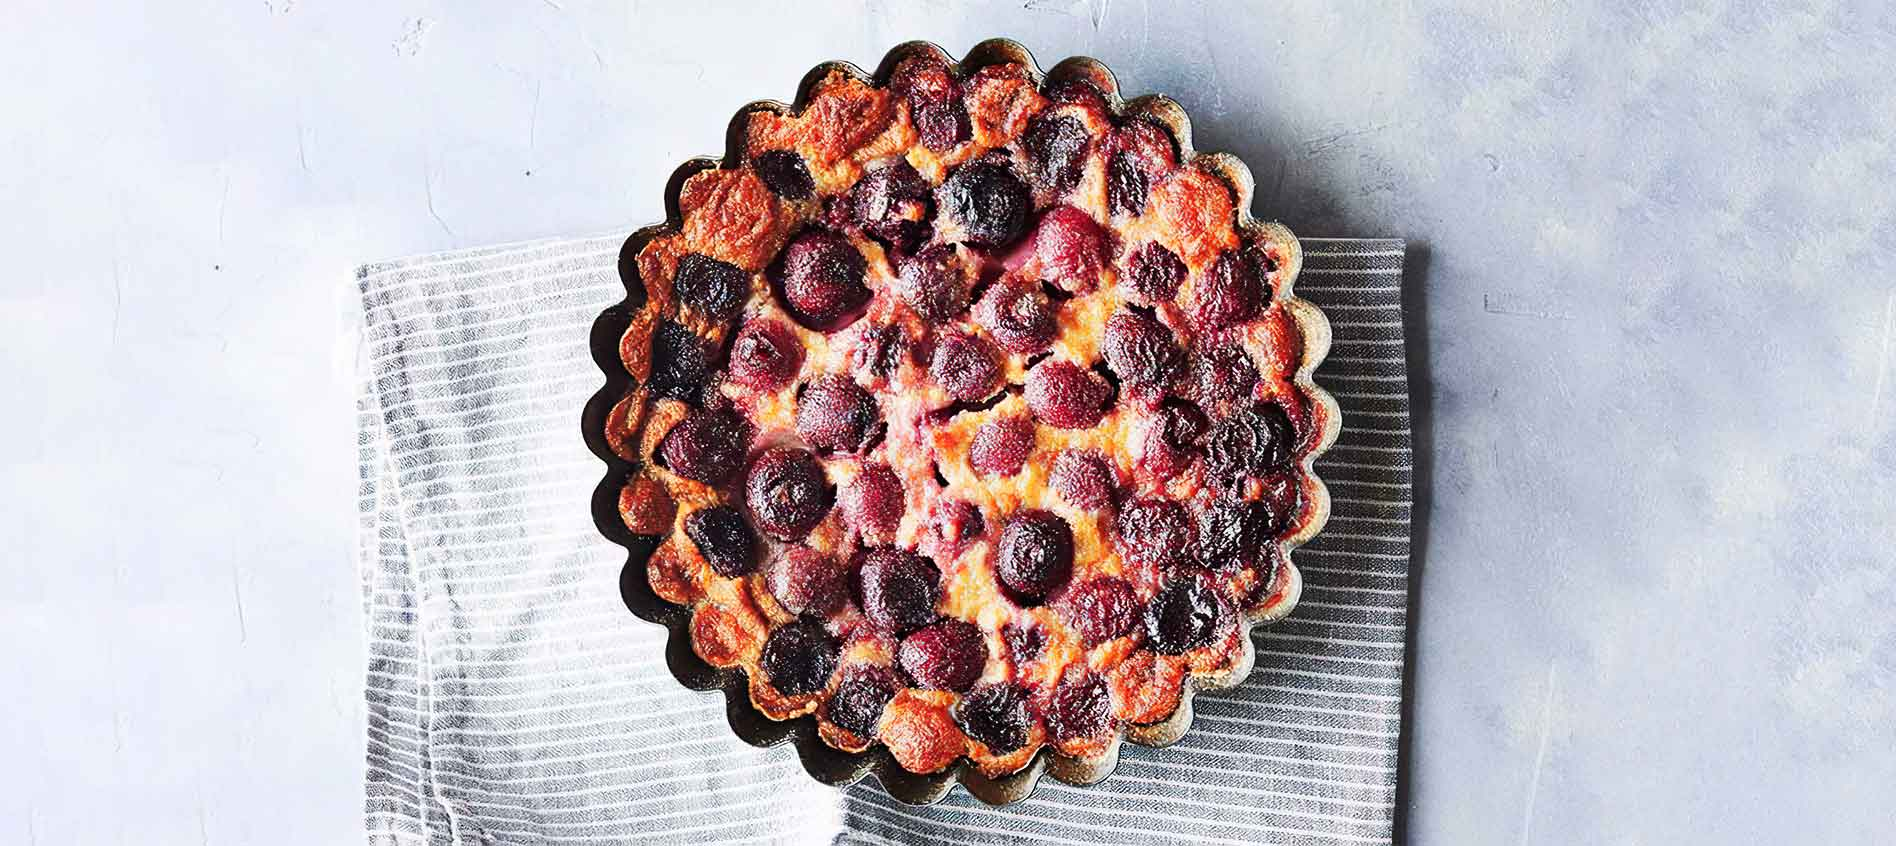 SUMMER Cherry clafoutis recipe by Jean-Francois Piege